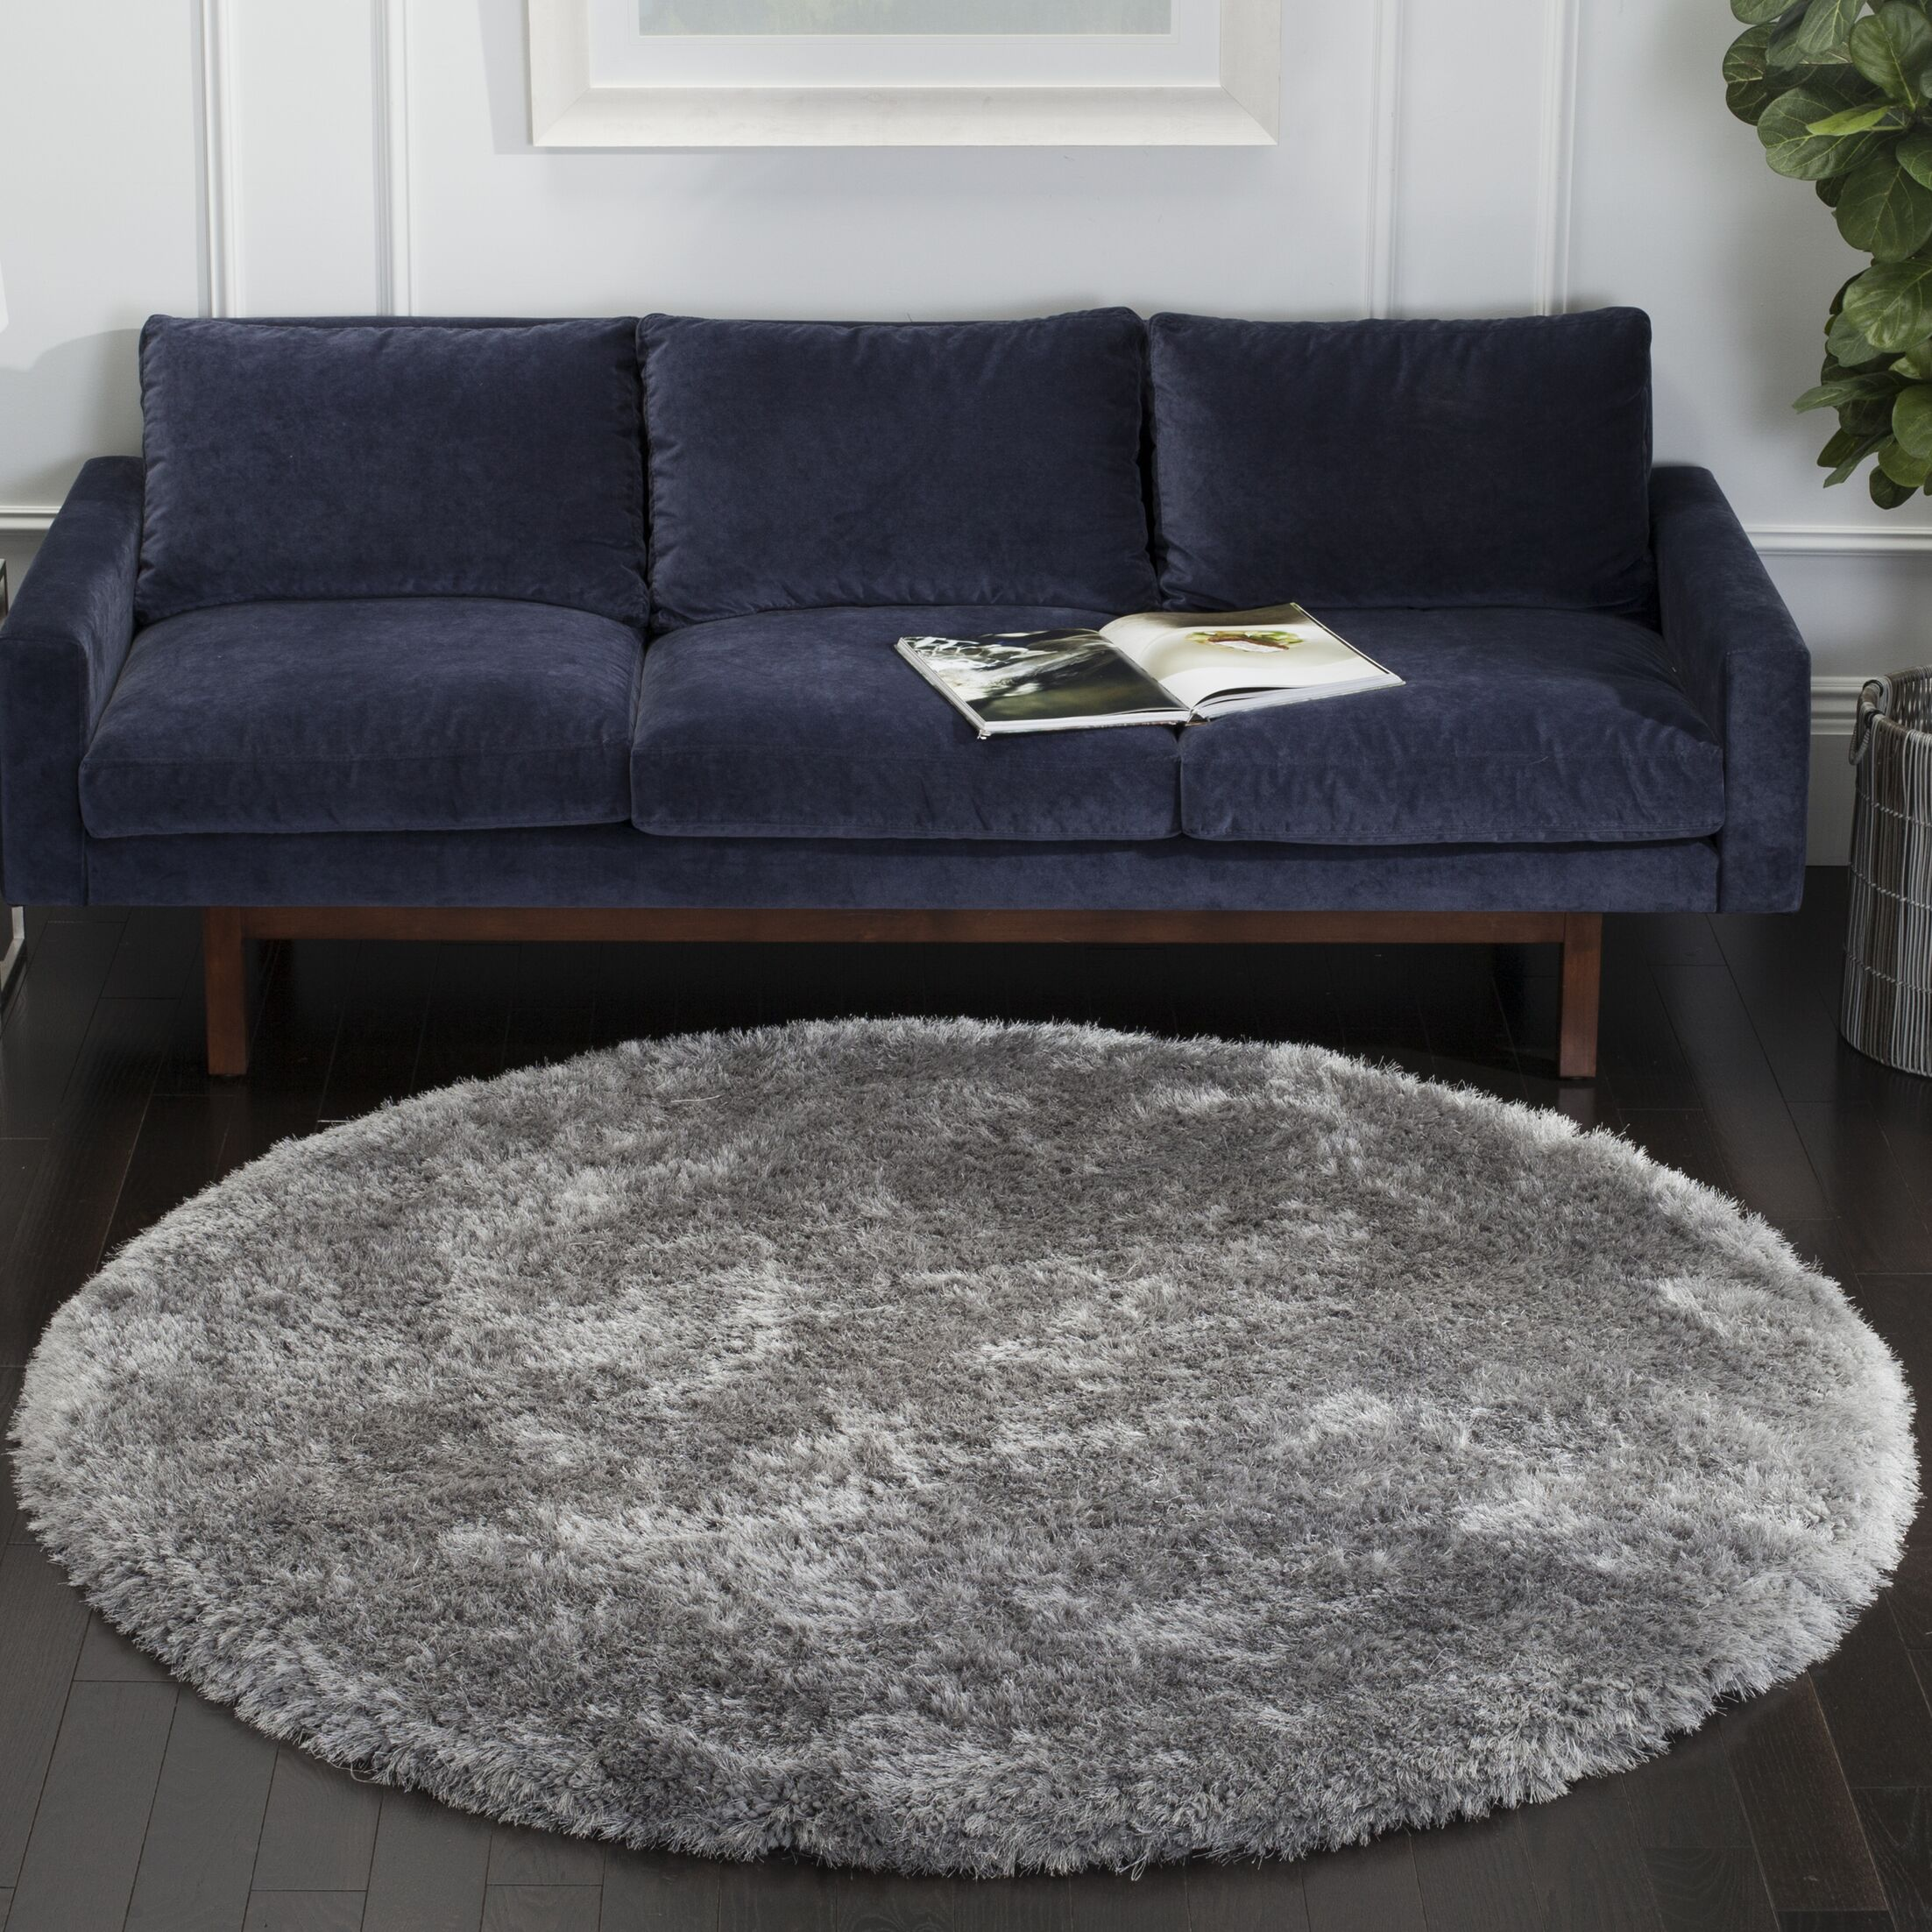 Jayne Hand Tufted Gray Area Rug Rug Size: Rectangle 6' X 9'